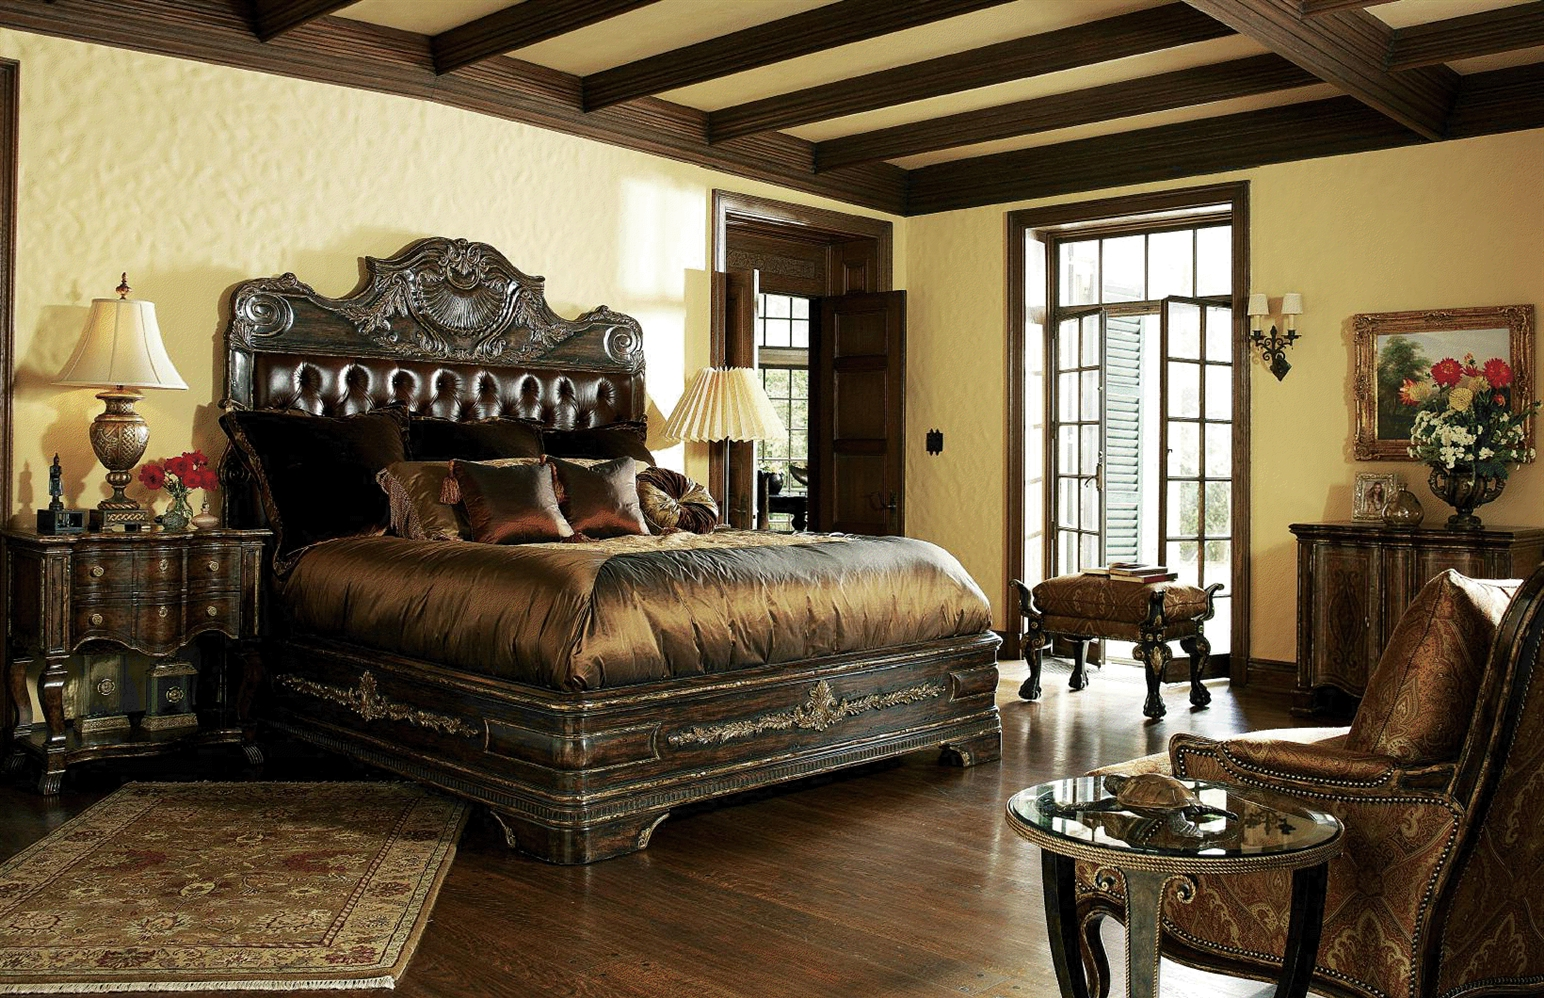 queen and king sized beds 1 high end master bedroom set carvings and tufted leather headboard - High End Master Bedroom Furniture